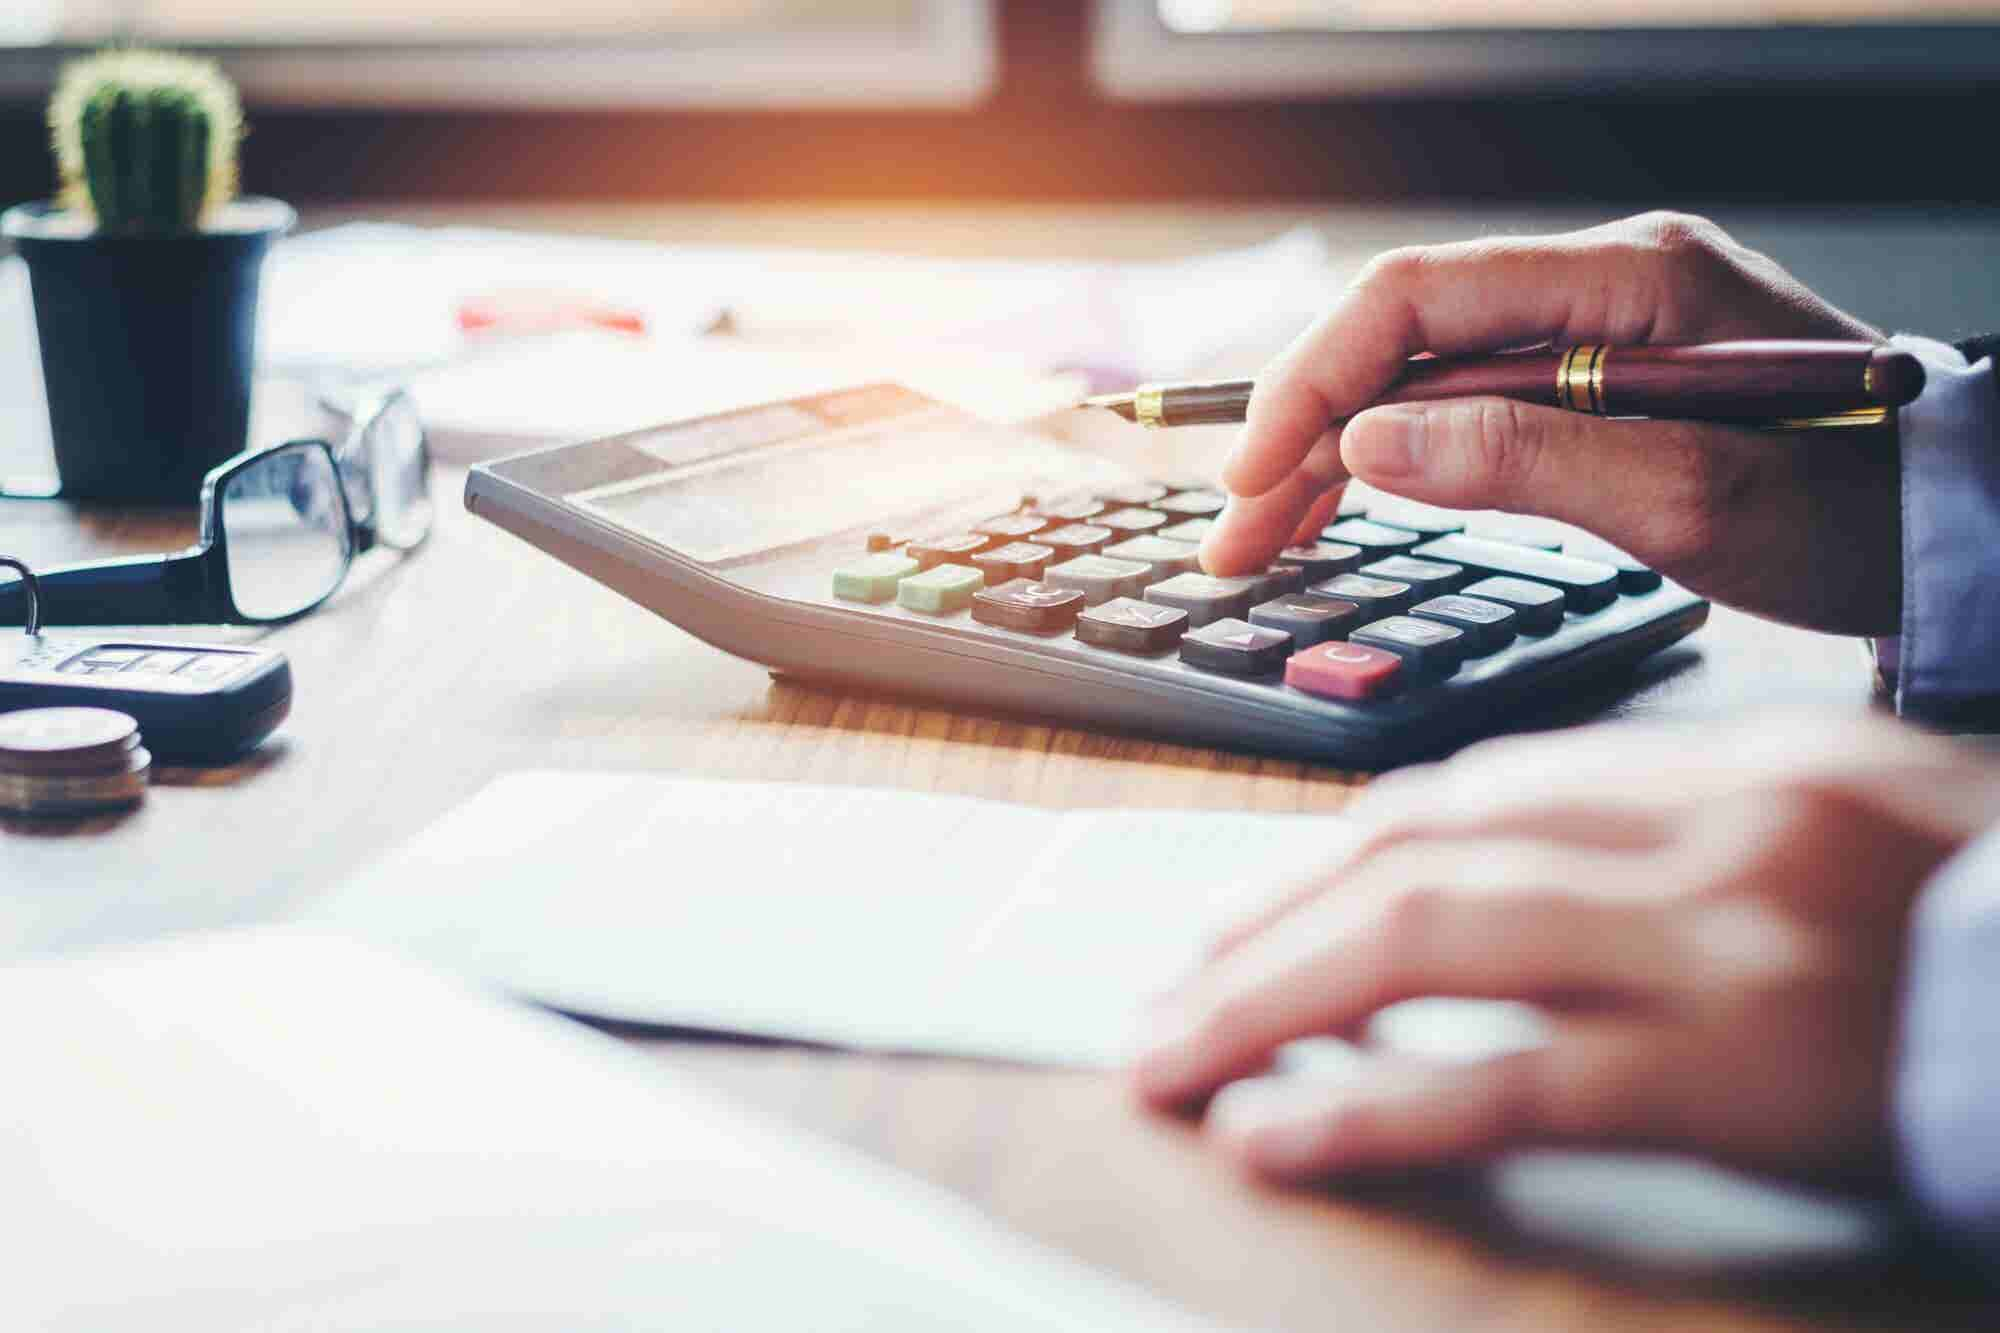 Know a Good Accountant? Cannabis Companies Are Looking